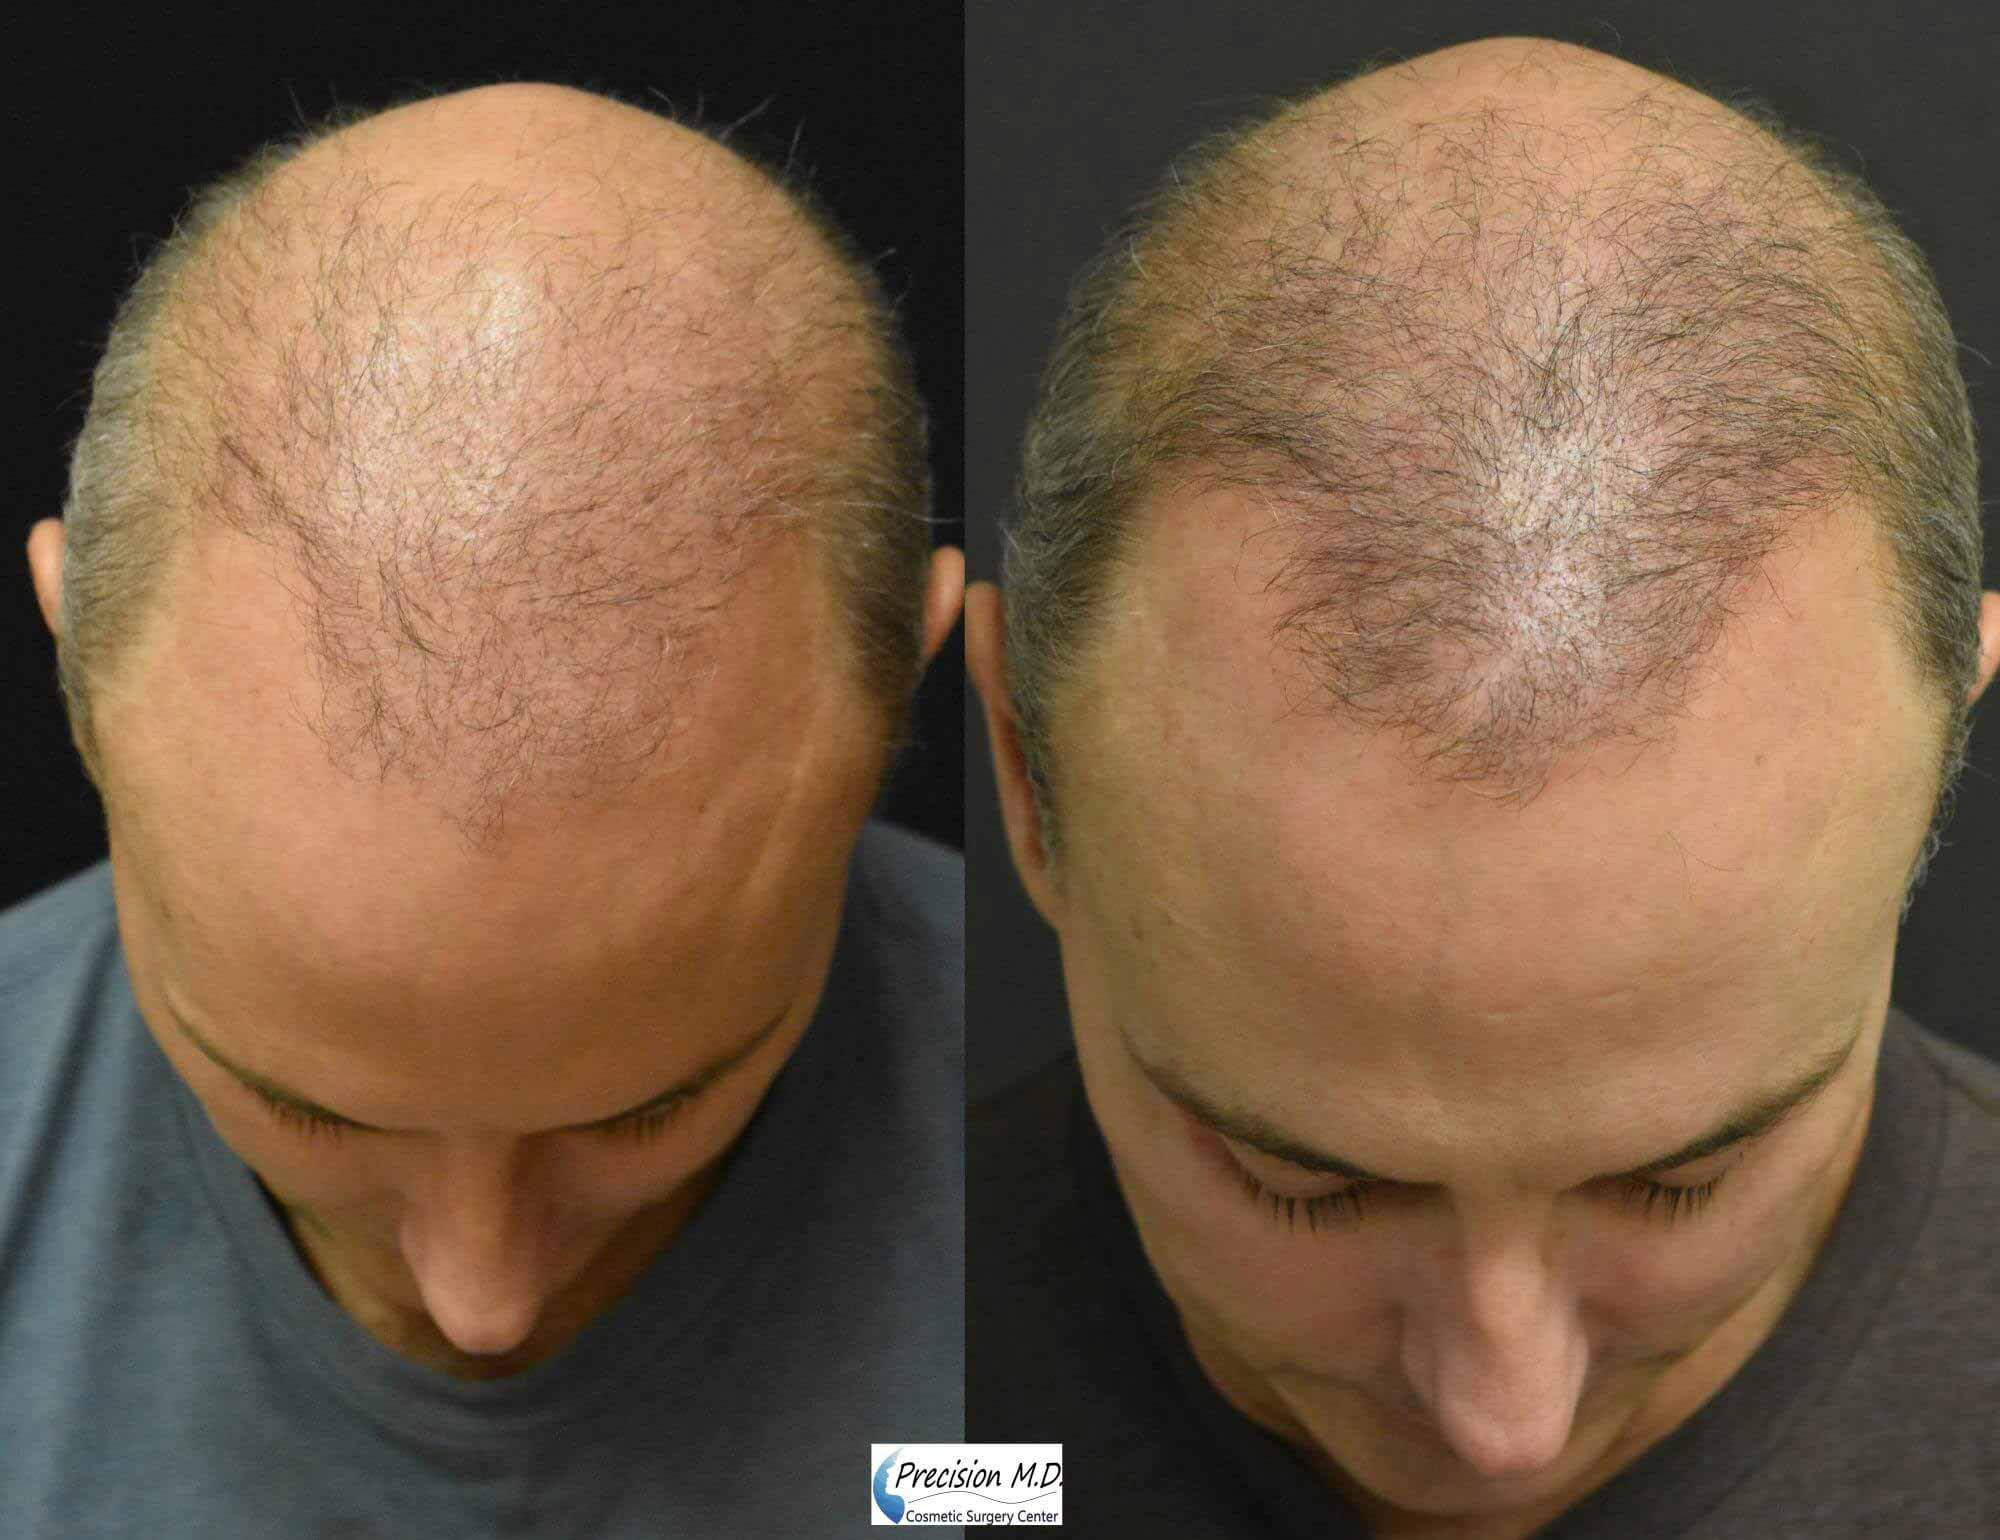 Before and After Hair Restoration showing the top of man's head